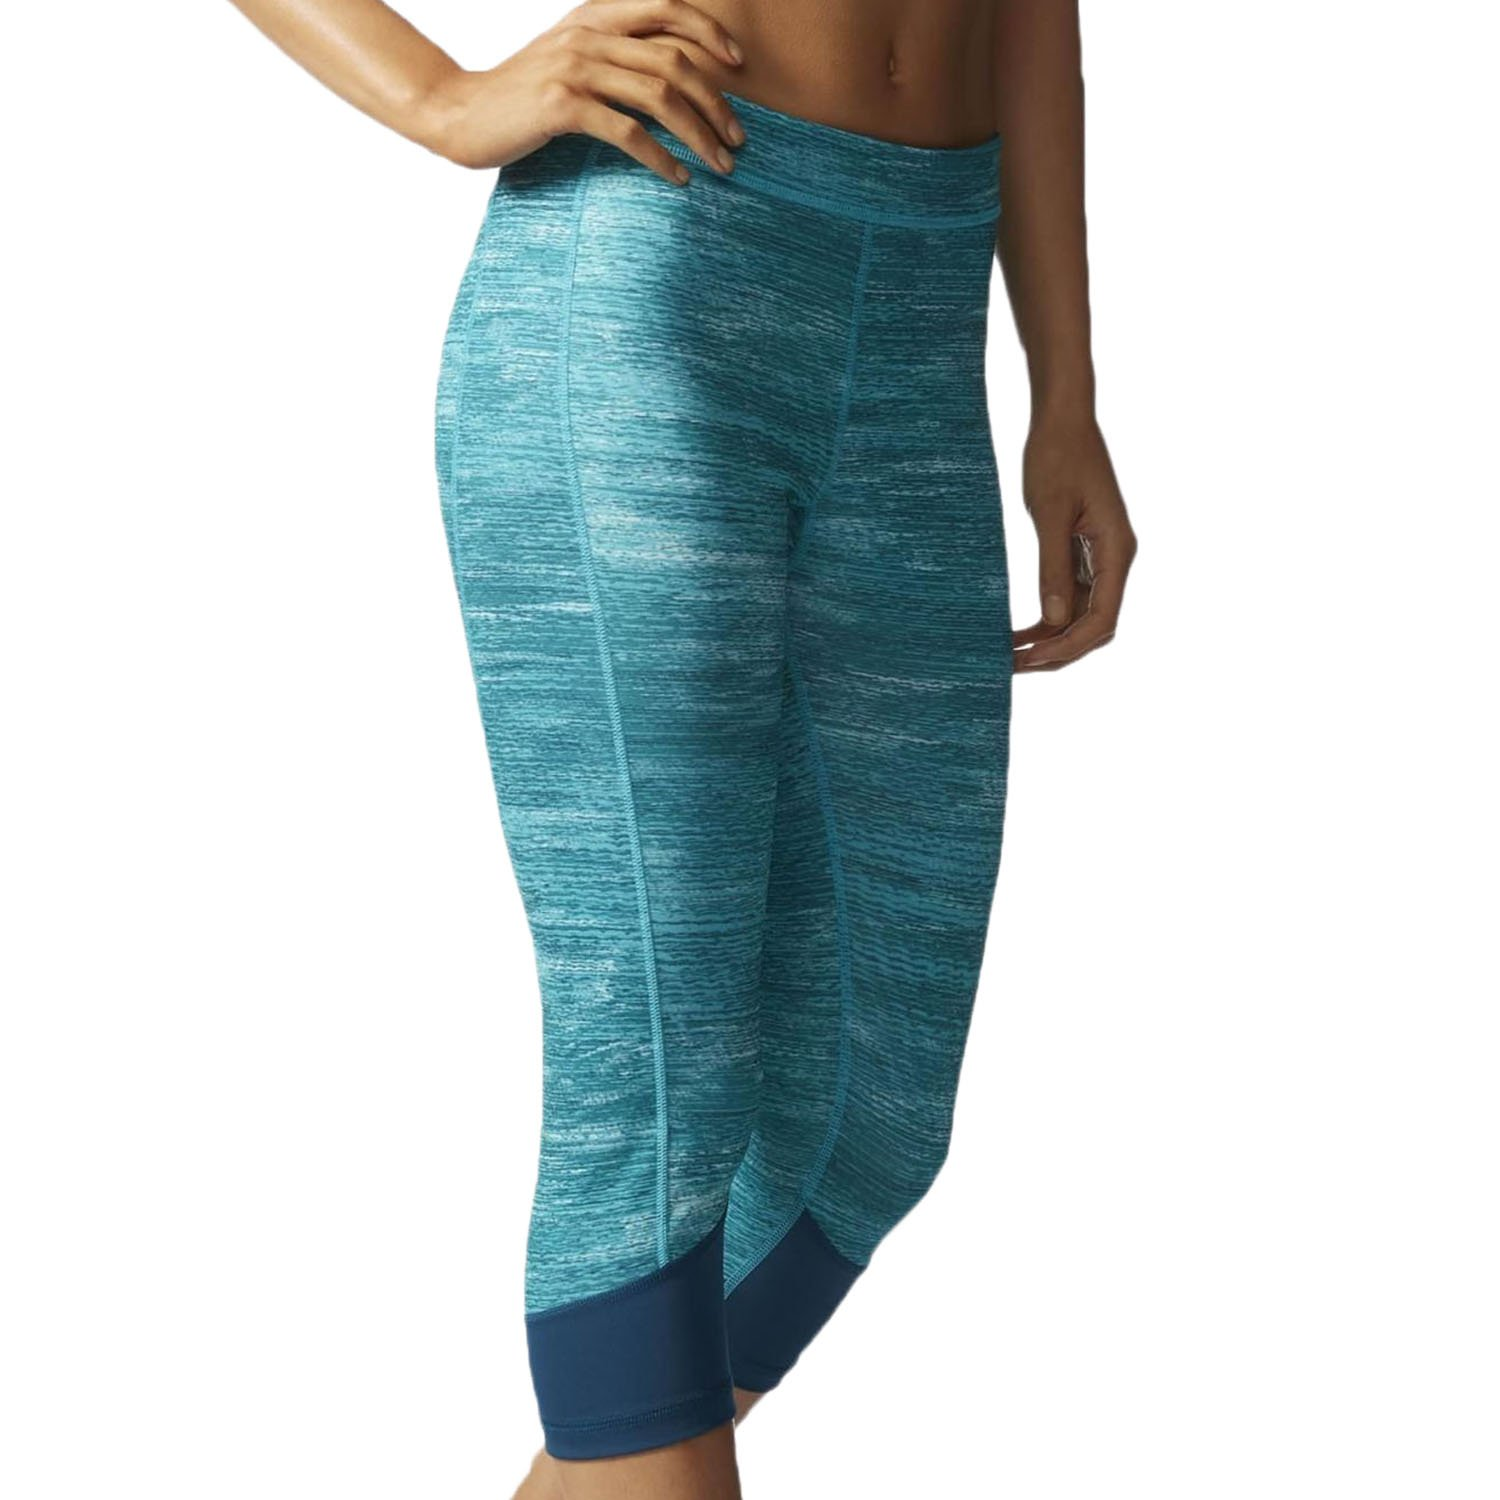 adidas Women's Techfit Capris, Mineral Heather, X-Small by adidas (Image #1)